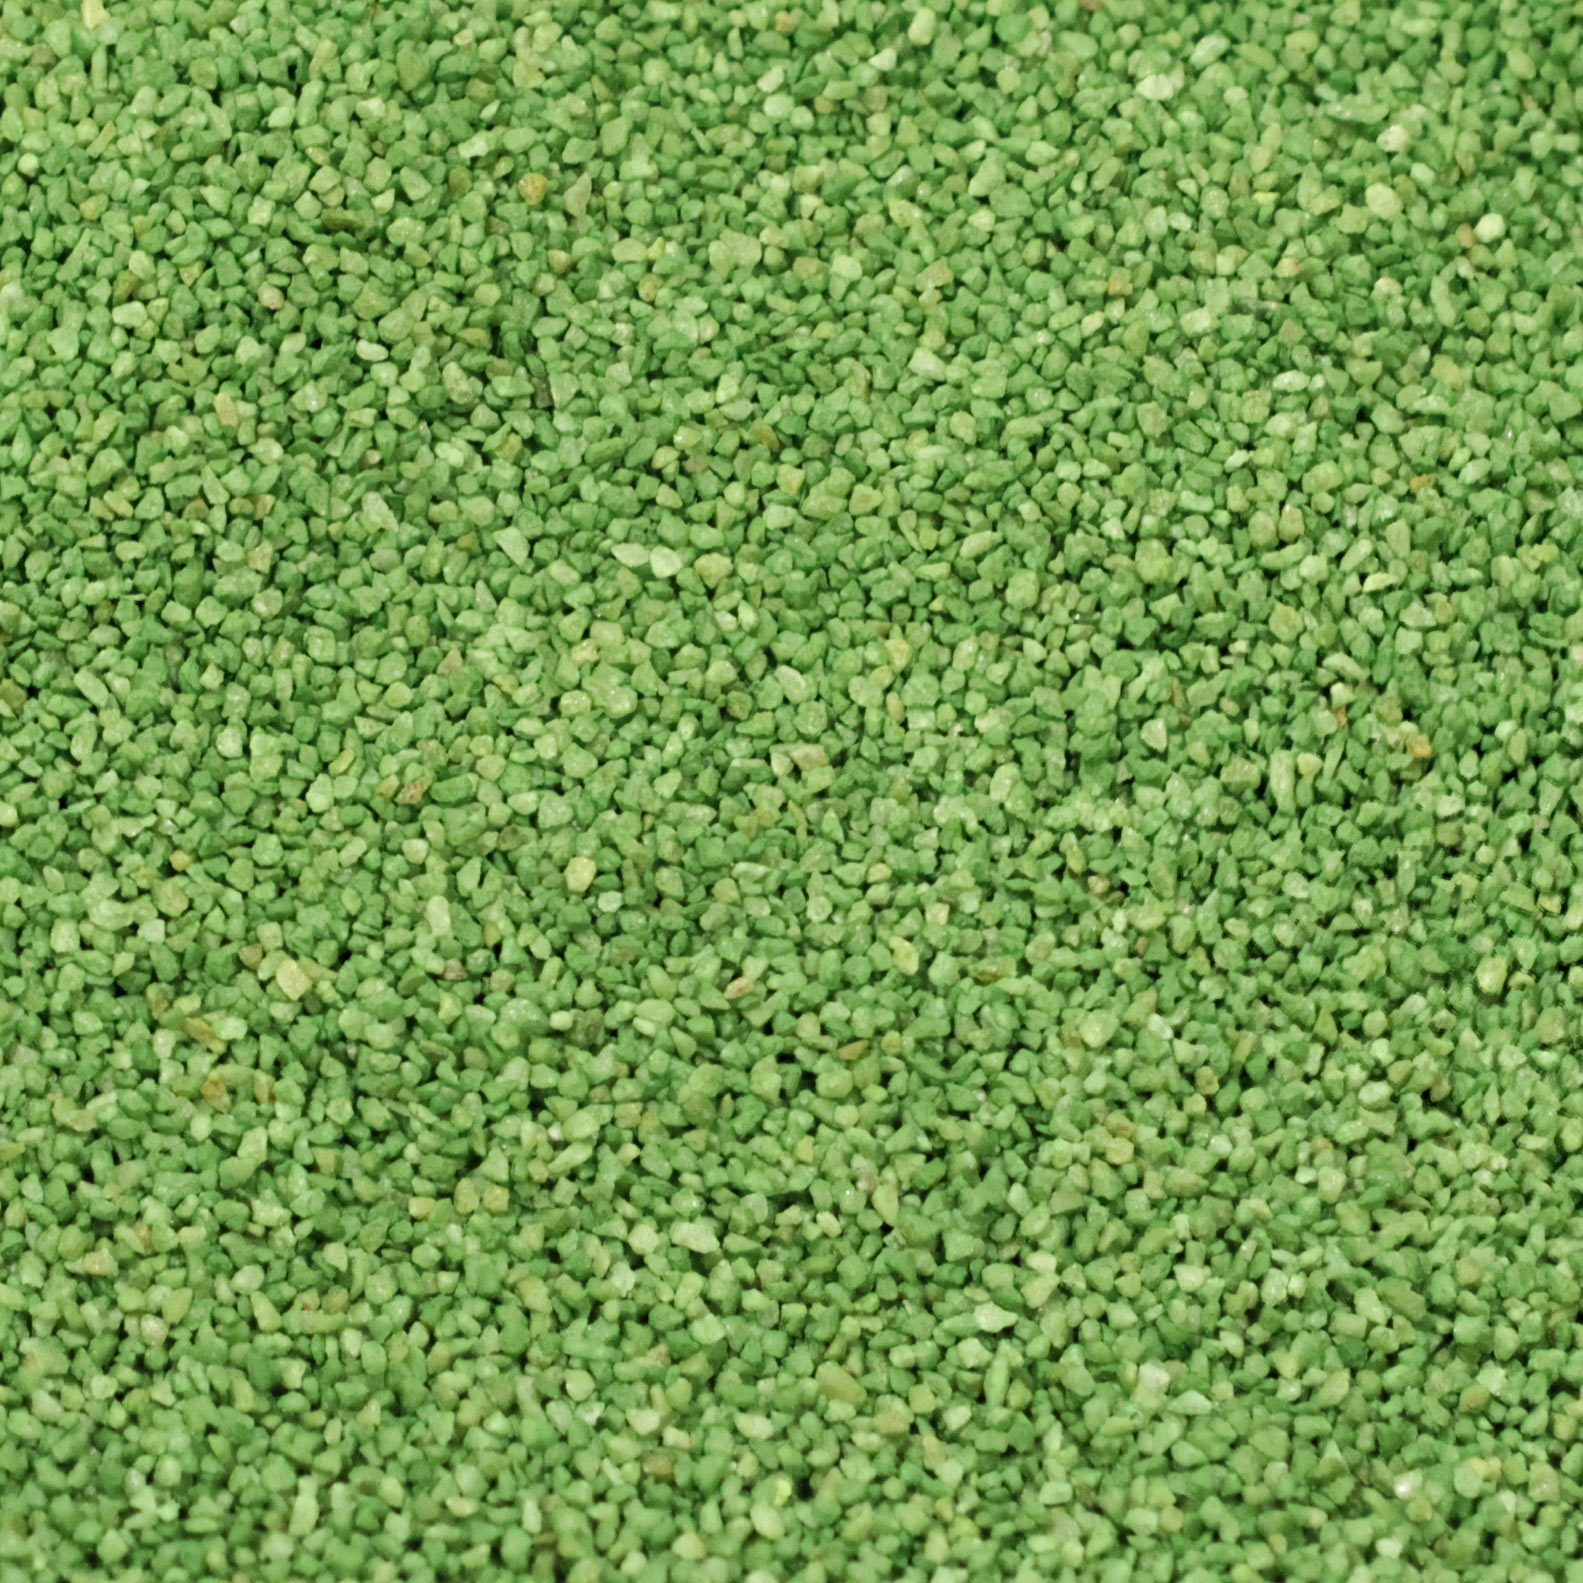 Green sand for artificial grass infill